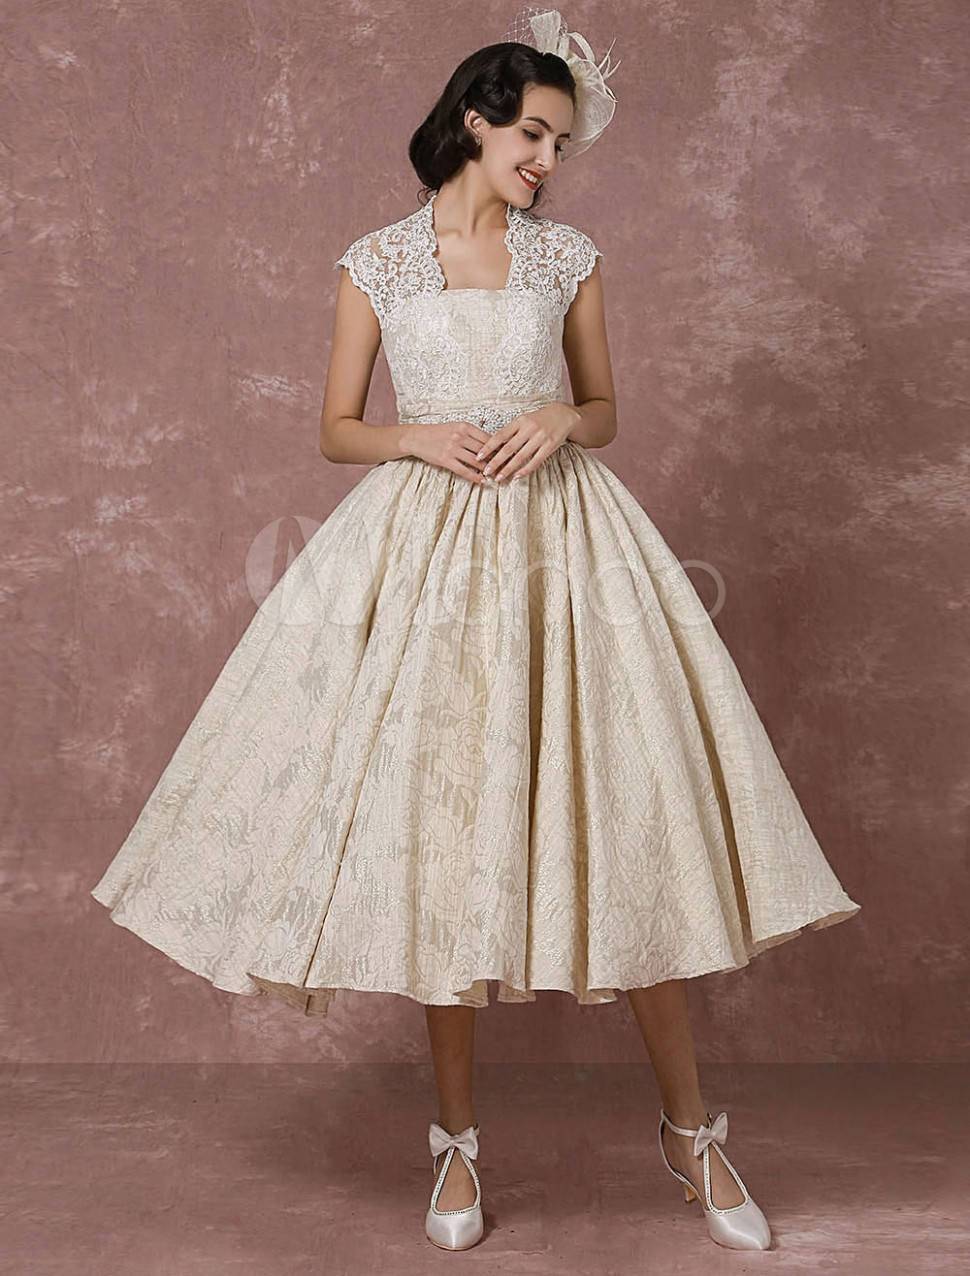 short wedding dress lace champagne vintage bridal dress ball gown beading backless tea length bridal gown with sash milanoo milanoo kleider